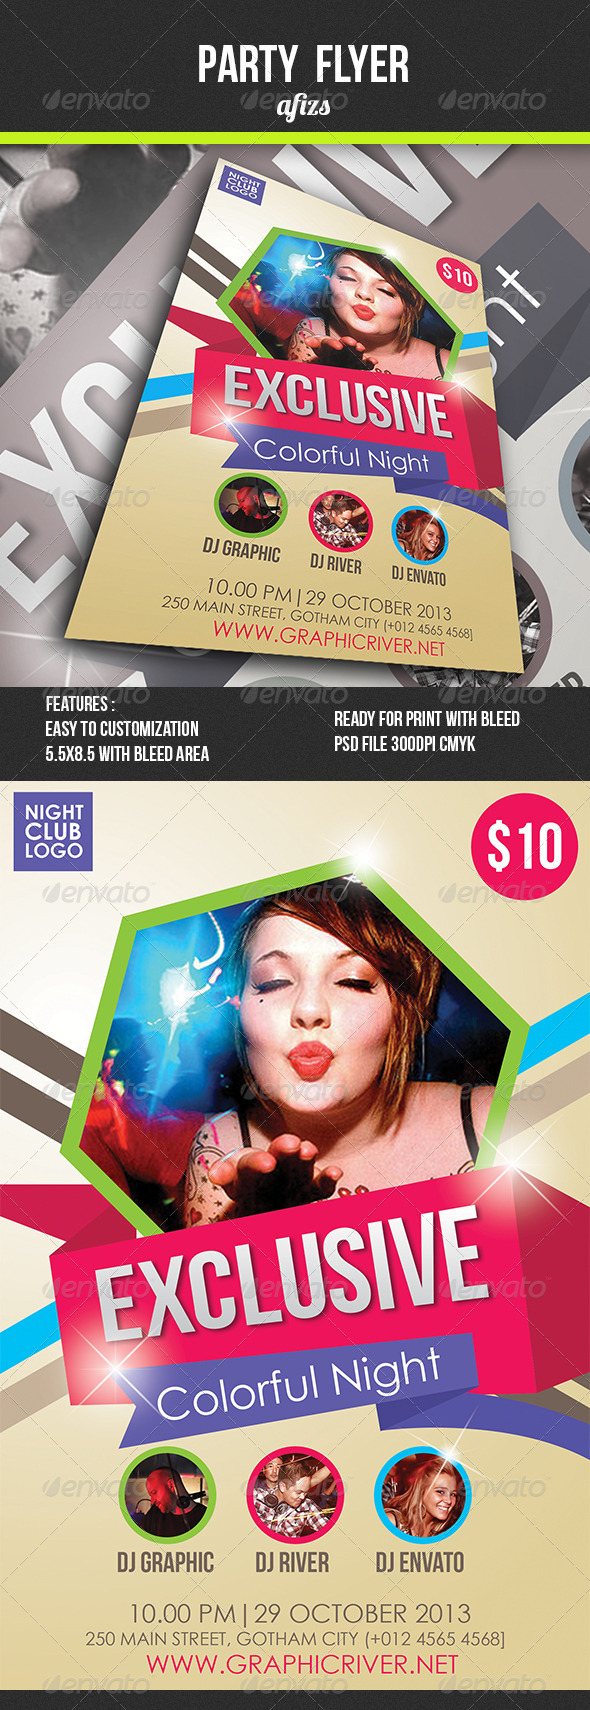 GraphicRiver Party Flyer 4540010